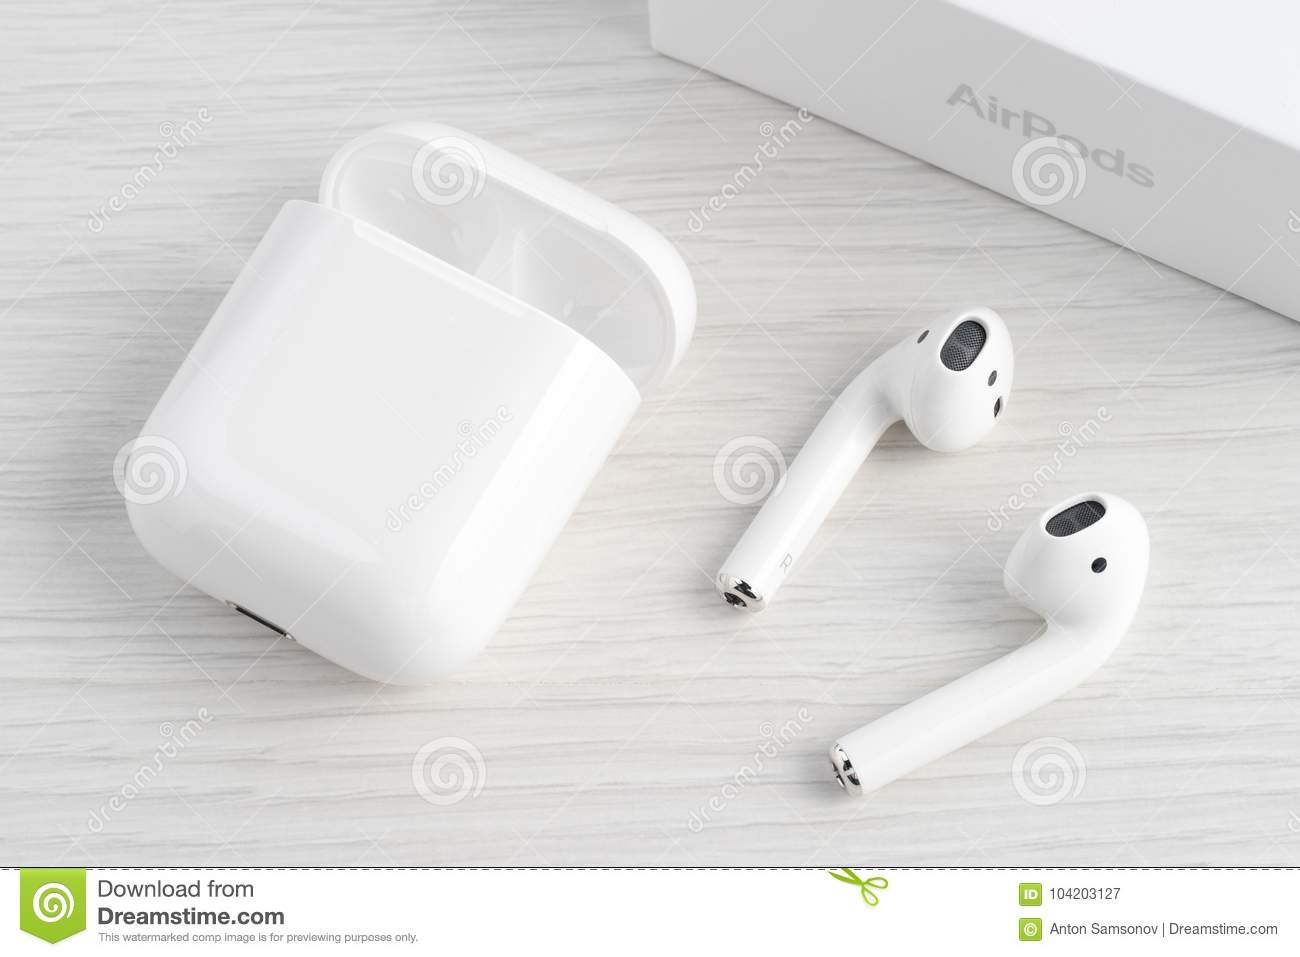 Airpods Wireless Headphones Editorial Photography Image Of